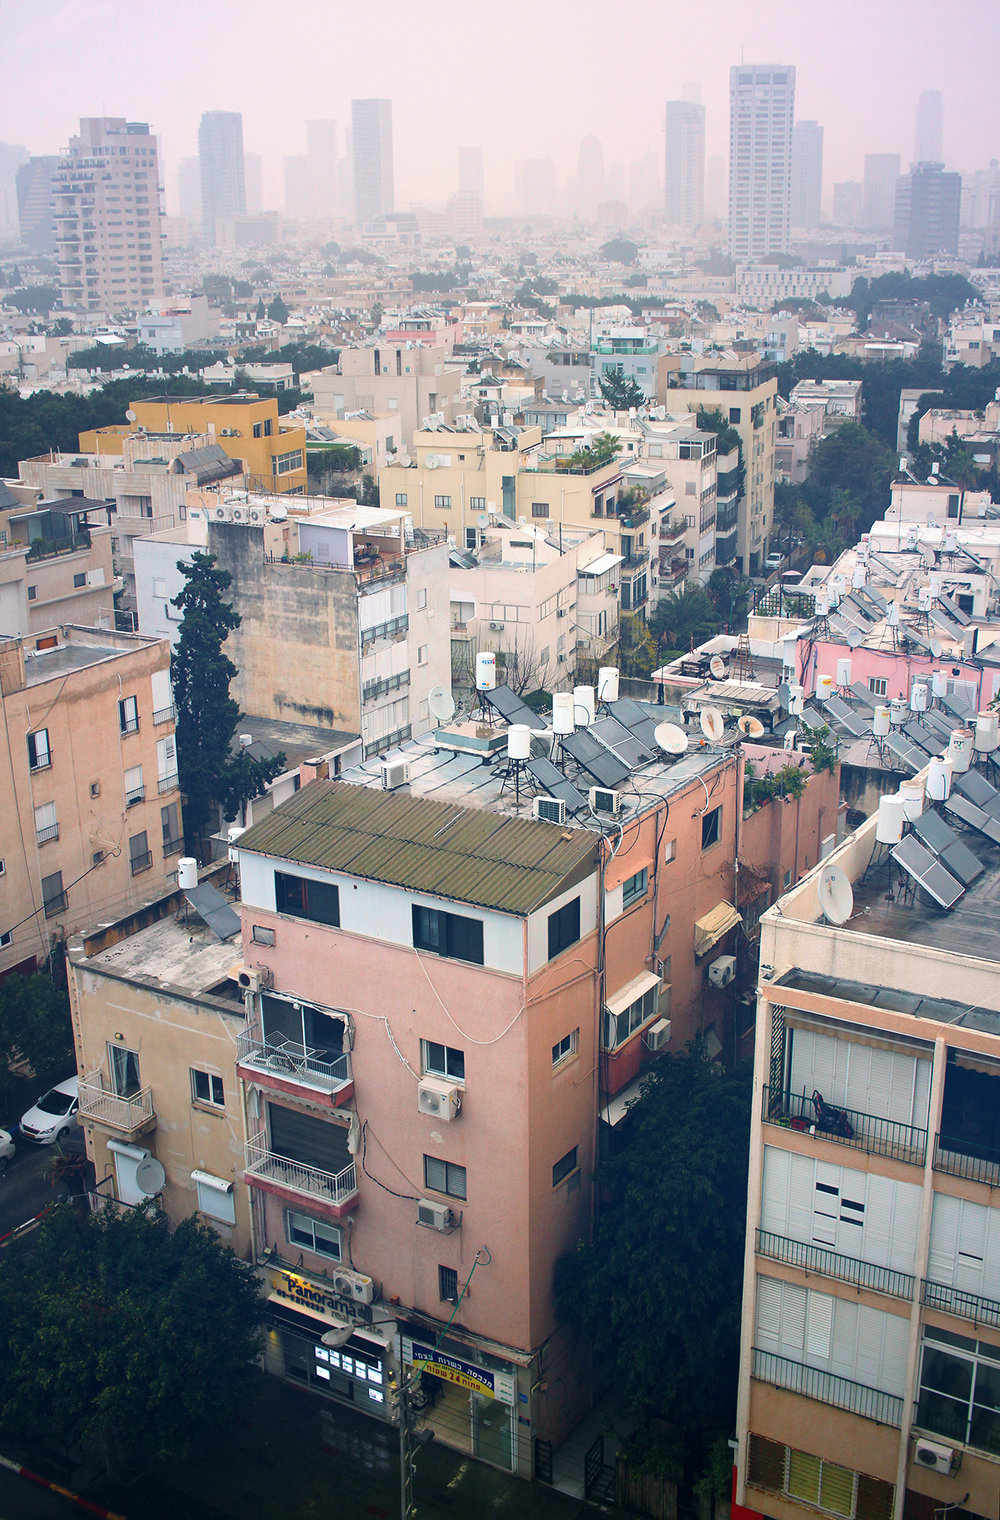 View across Tel-Aviv, taken from the fifth floor of the Deborah Hotel on Ben Yehuda Street. Travel photography by Geena Matuson @geenamatuson #thegirlmirage.